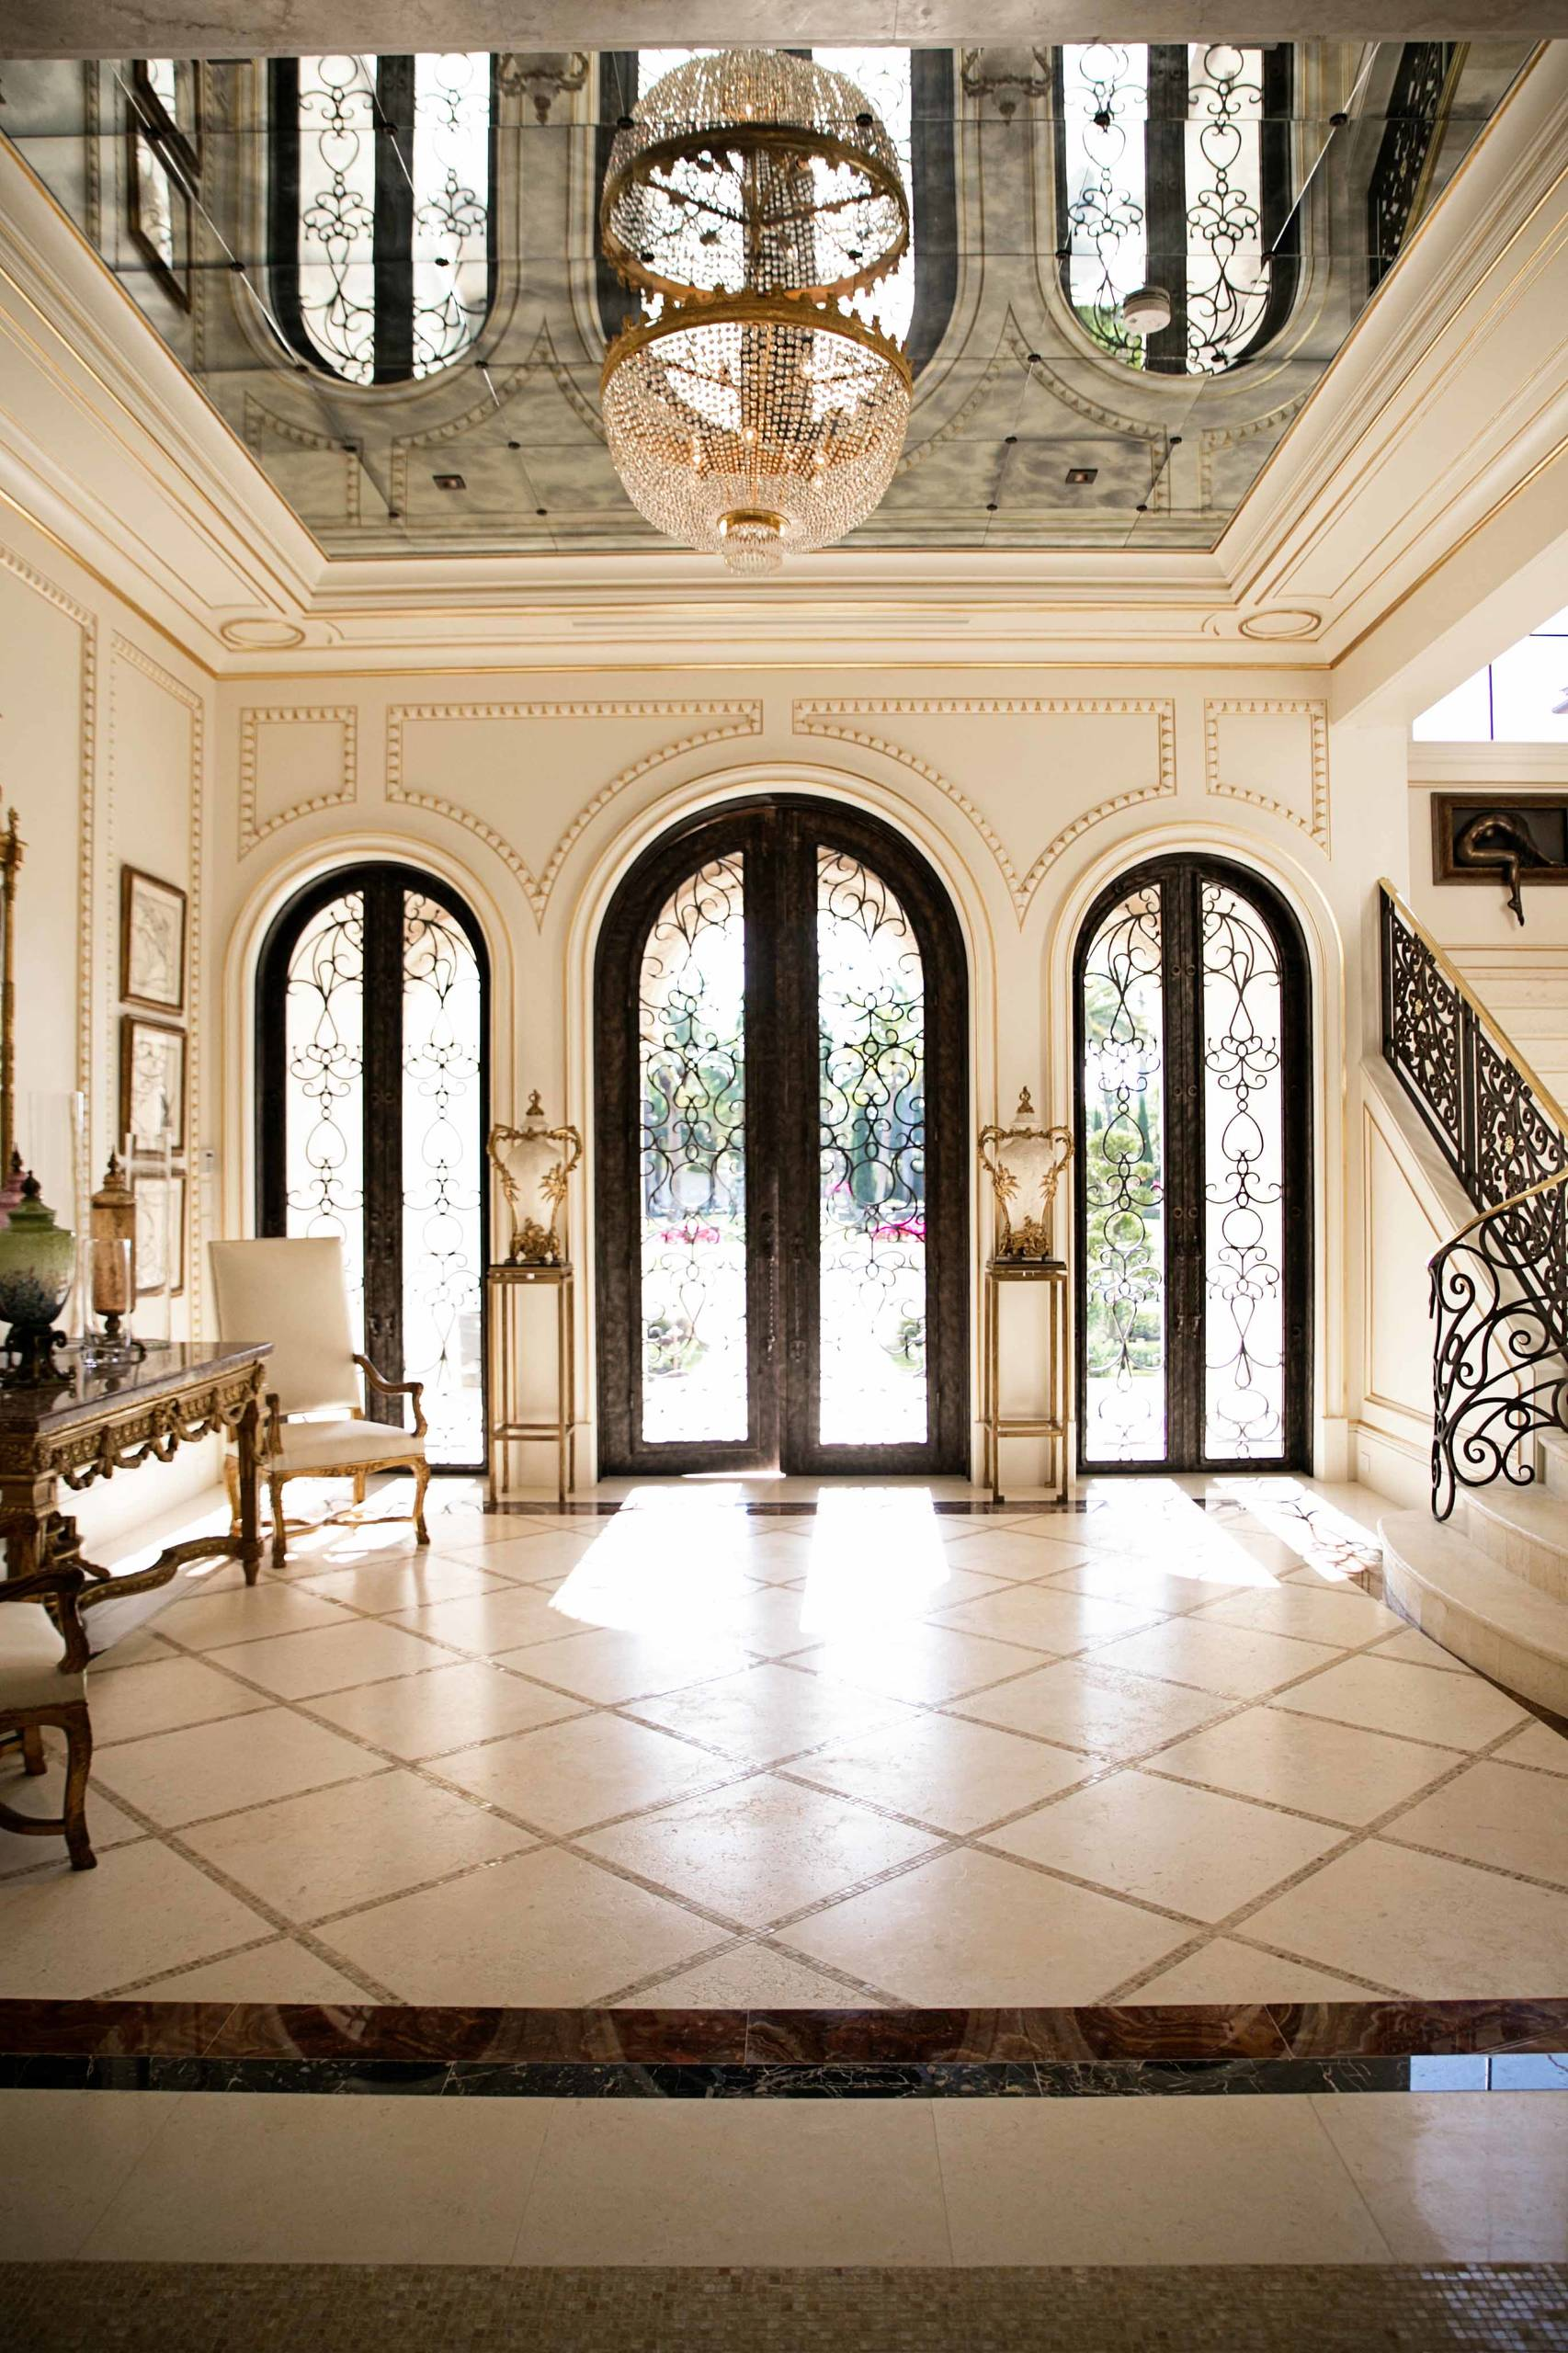 Entrance Foyer And Circulation In House : Uplifting mediterranean entry hall designs that will